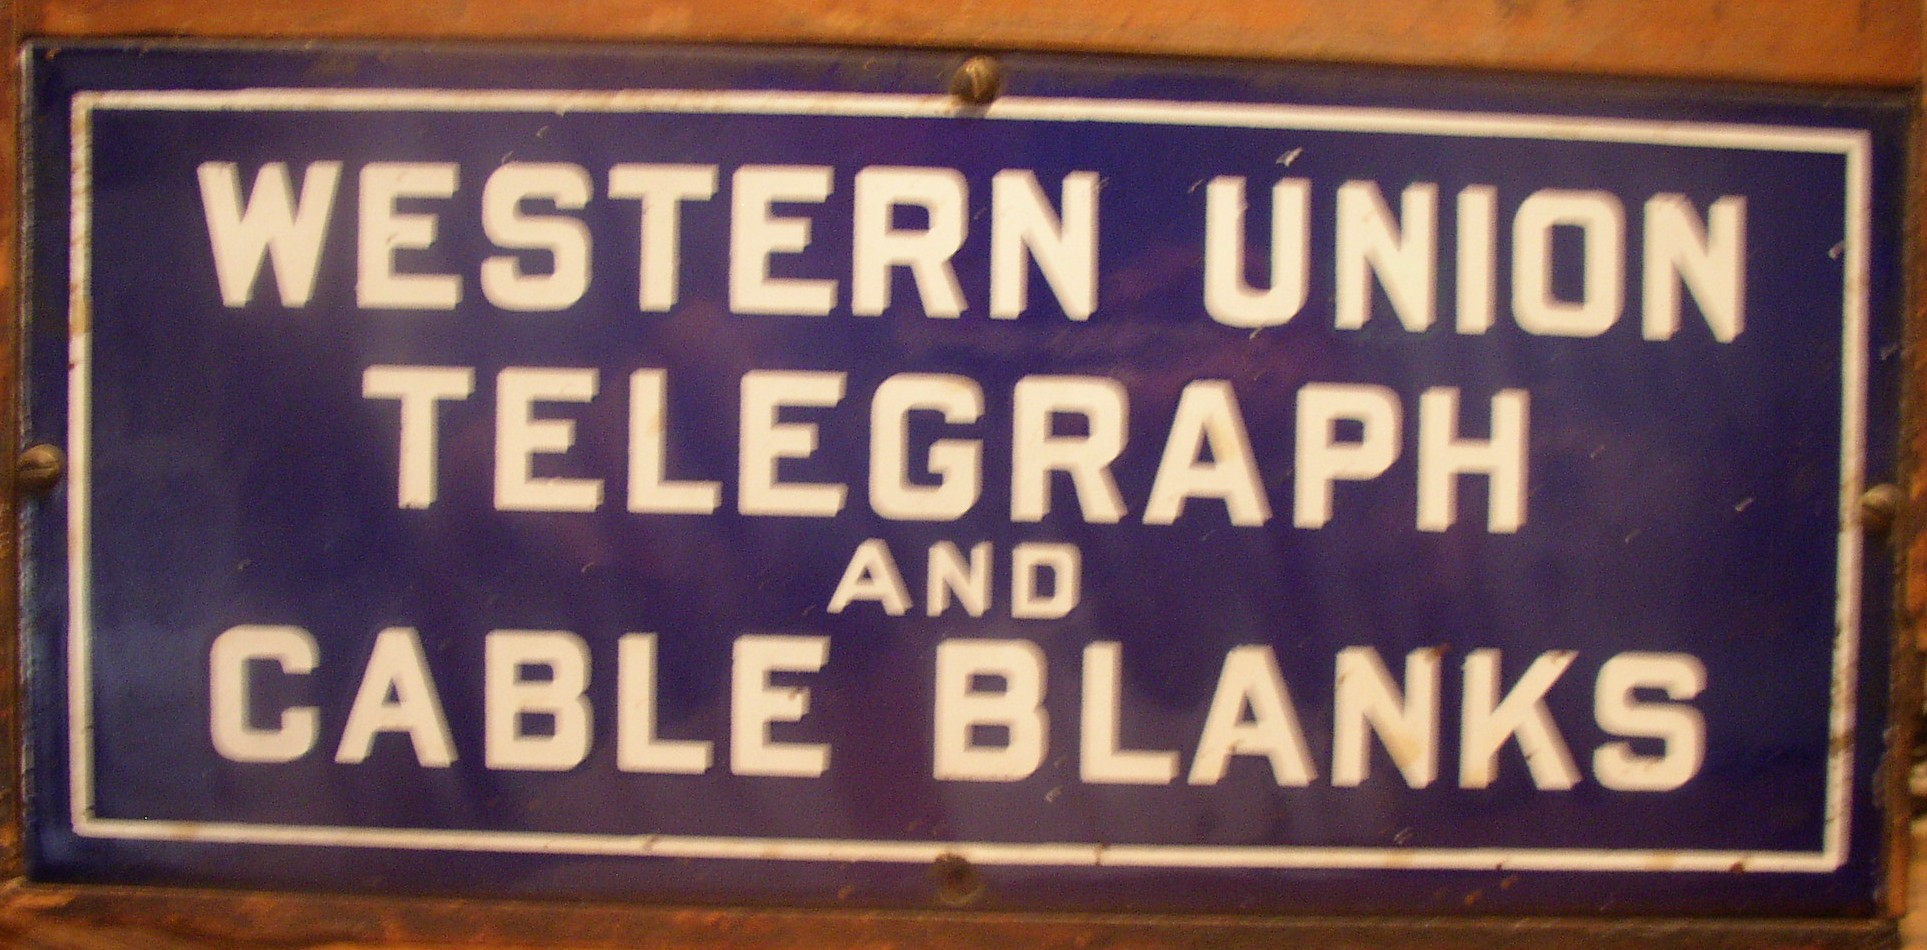 Western Union Telegraph Forms Box with enamel sign